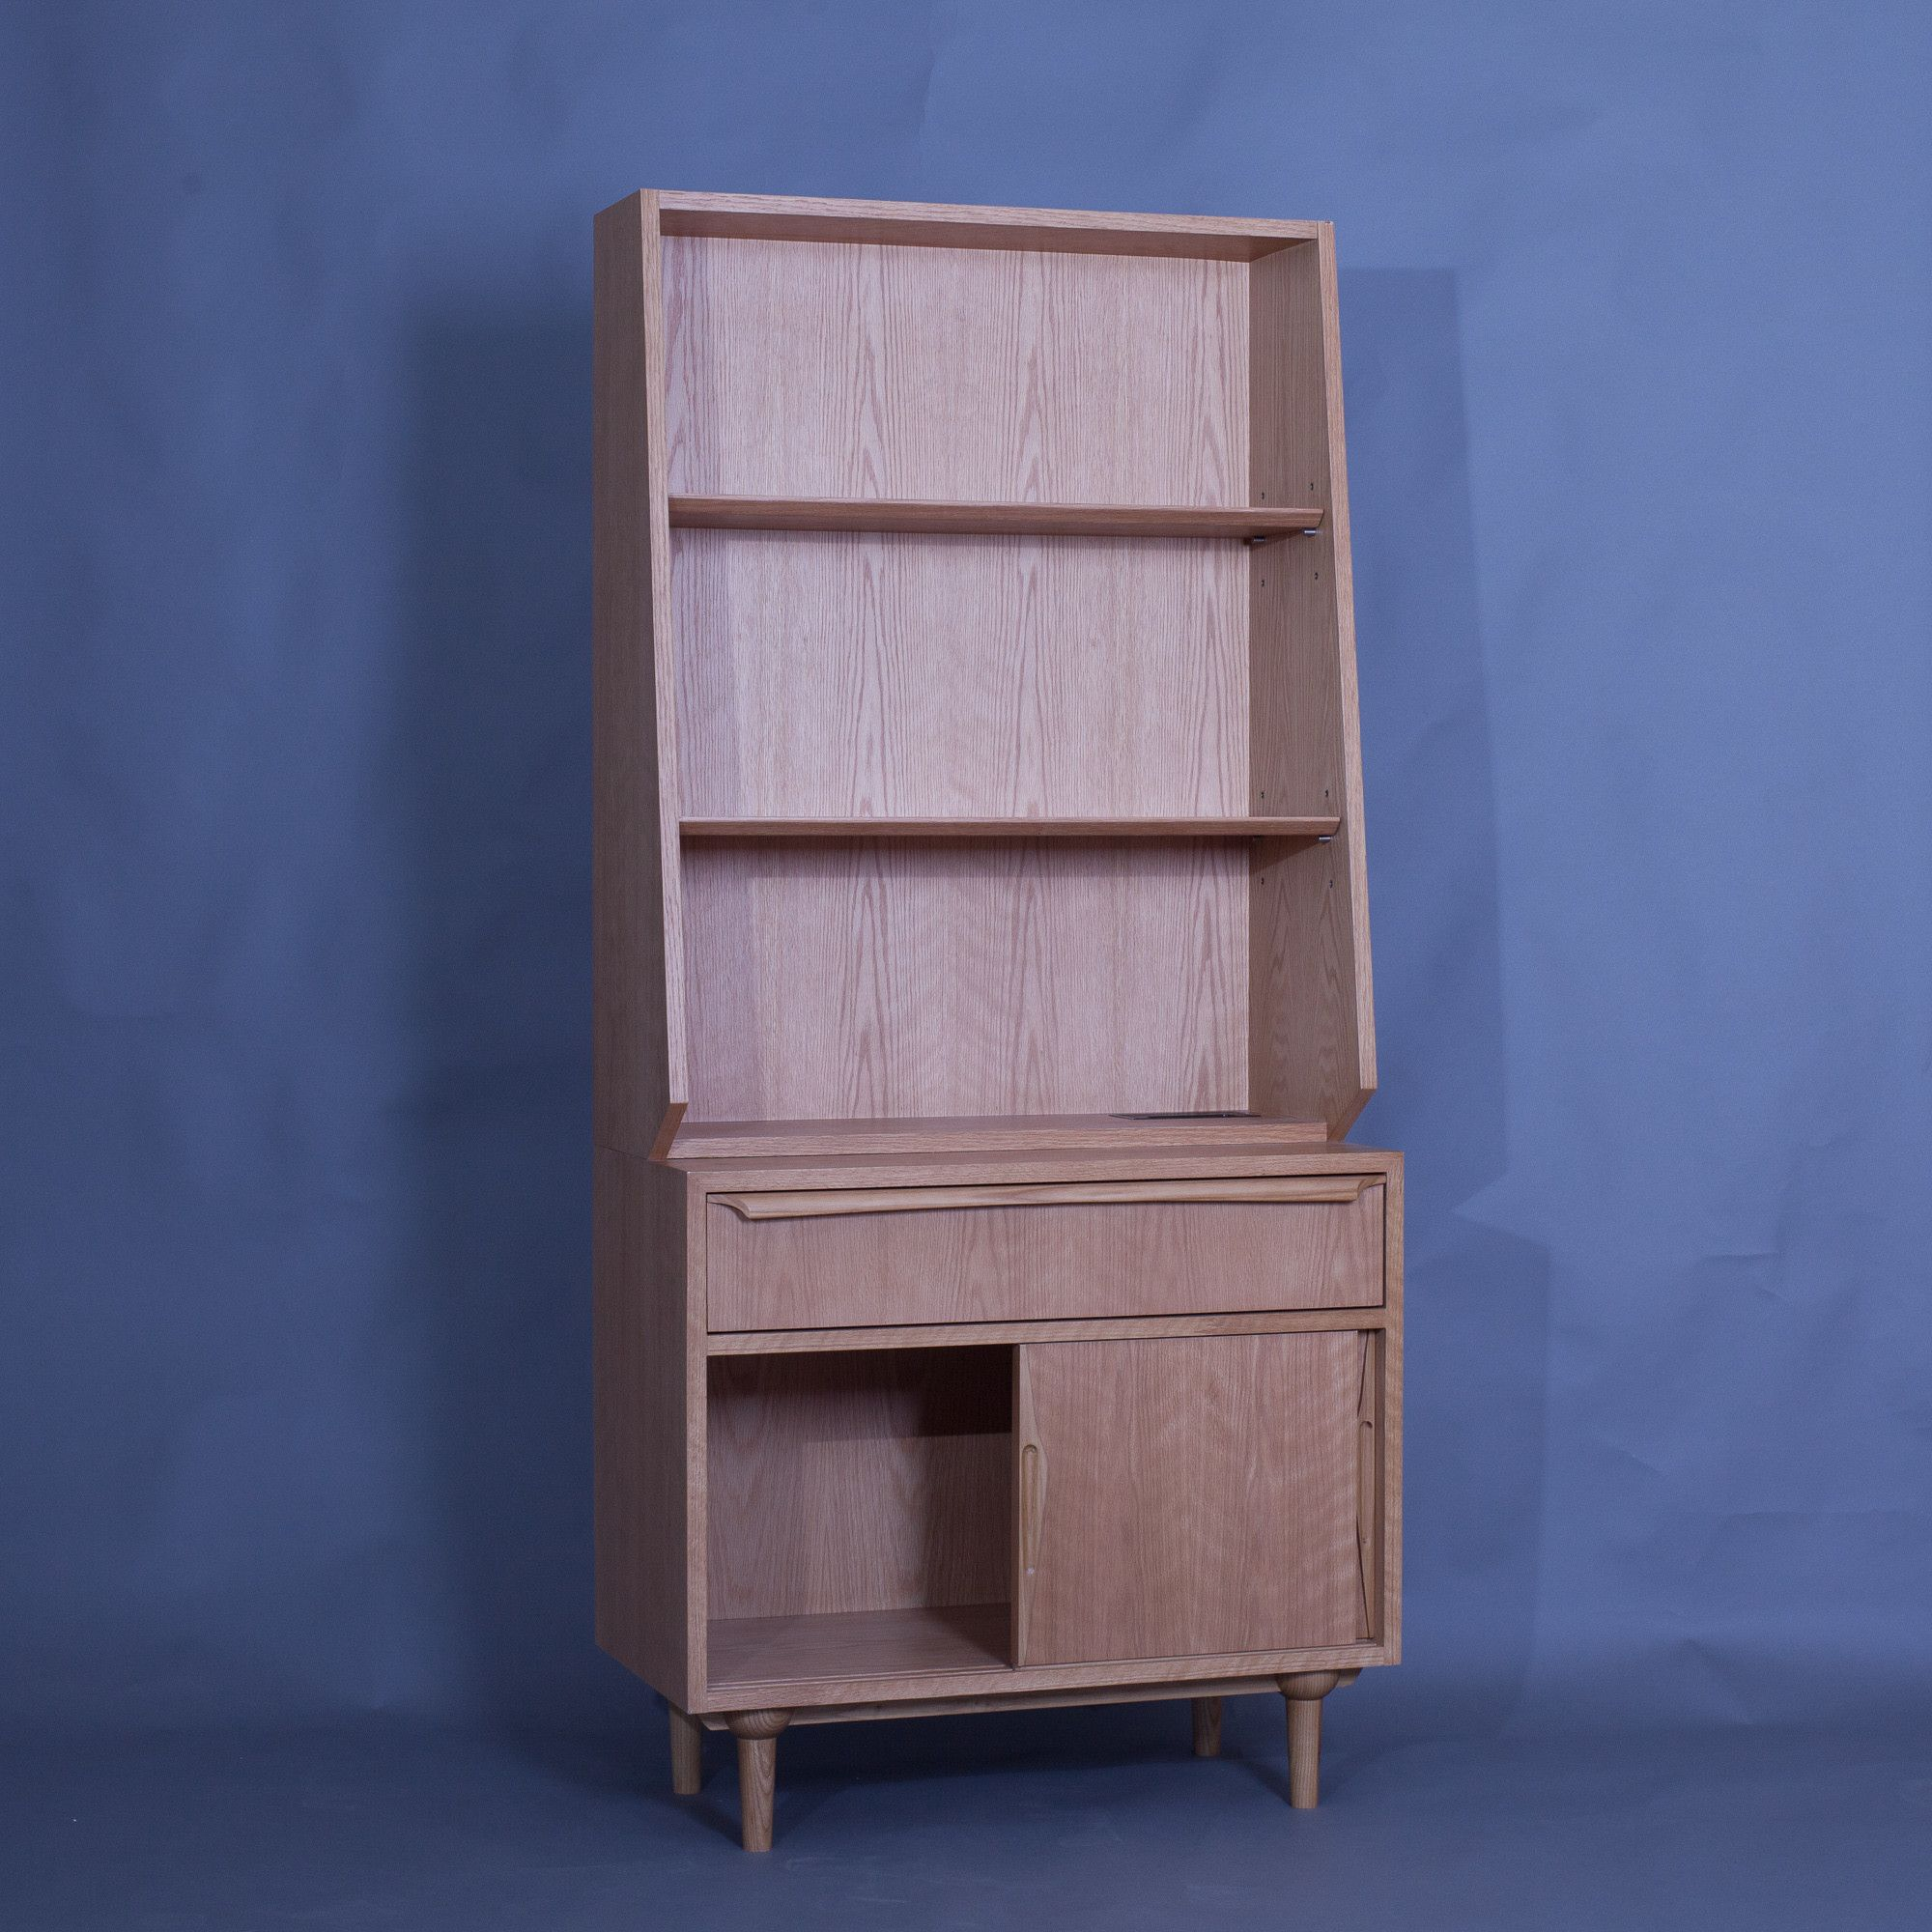 PIKKU bookshelf - Cabinet - OUT OF STOCK